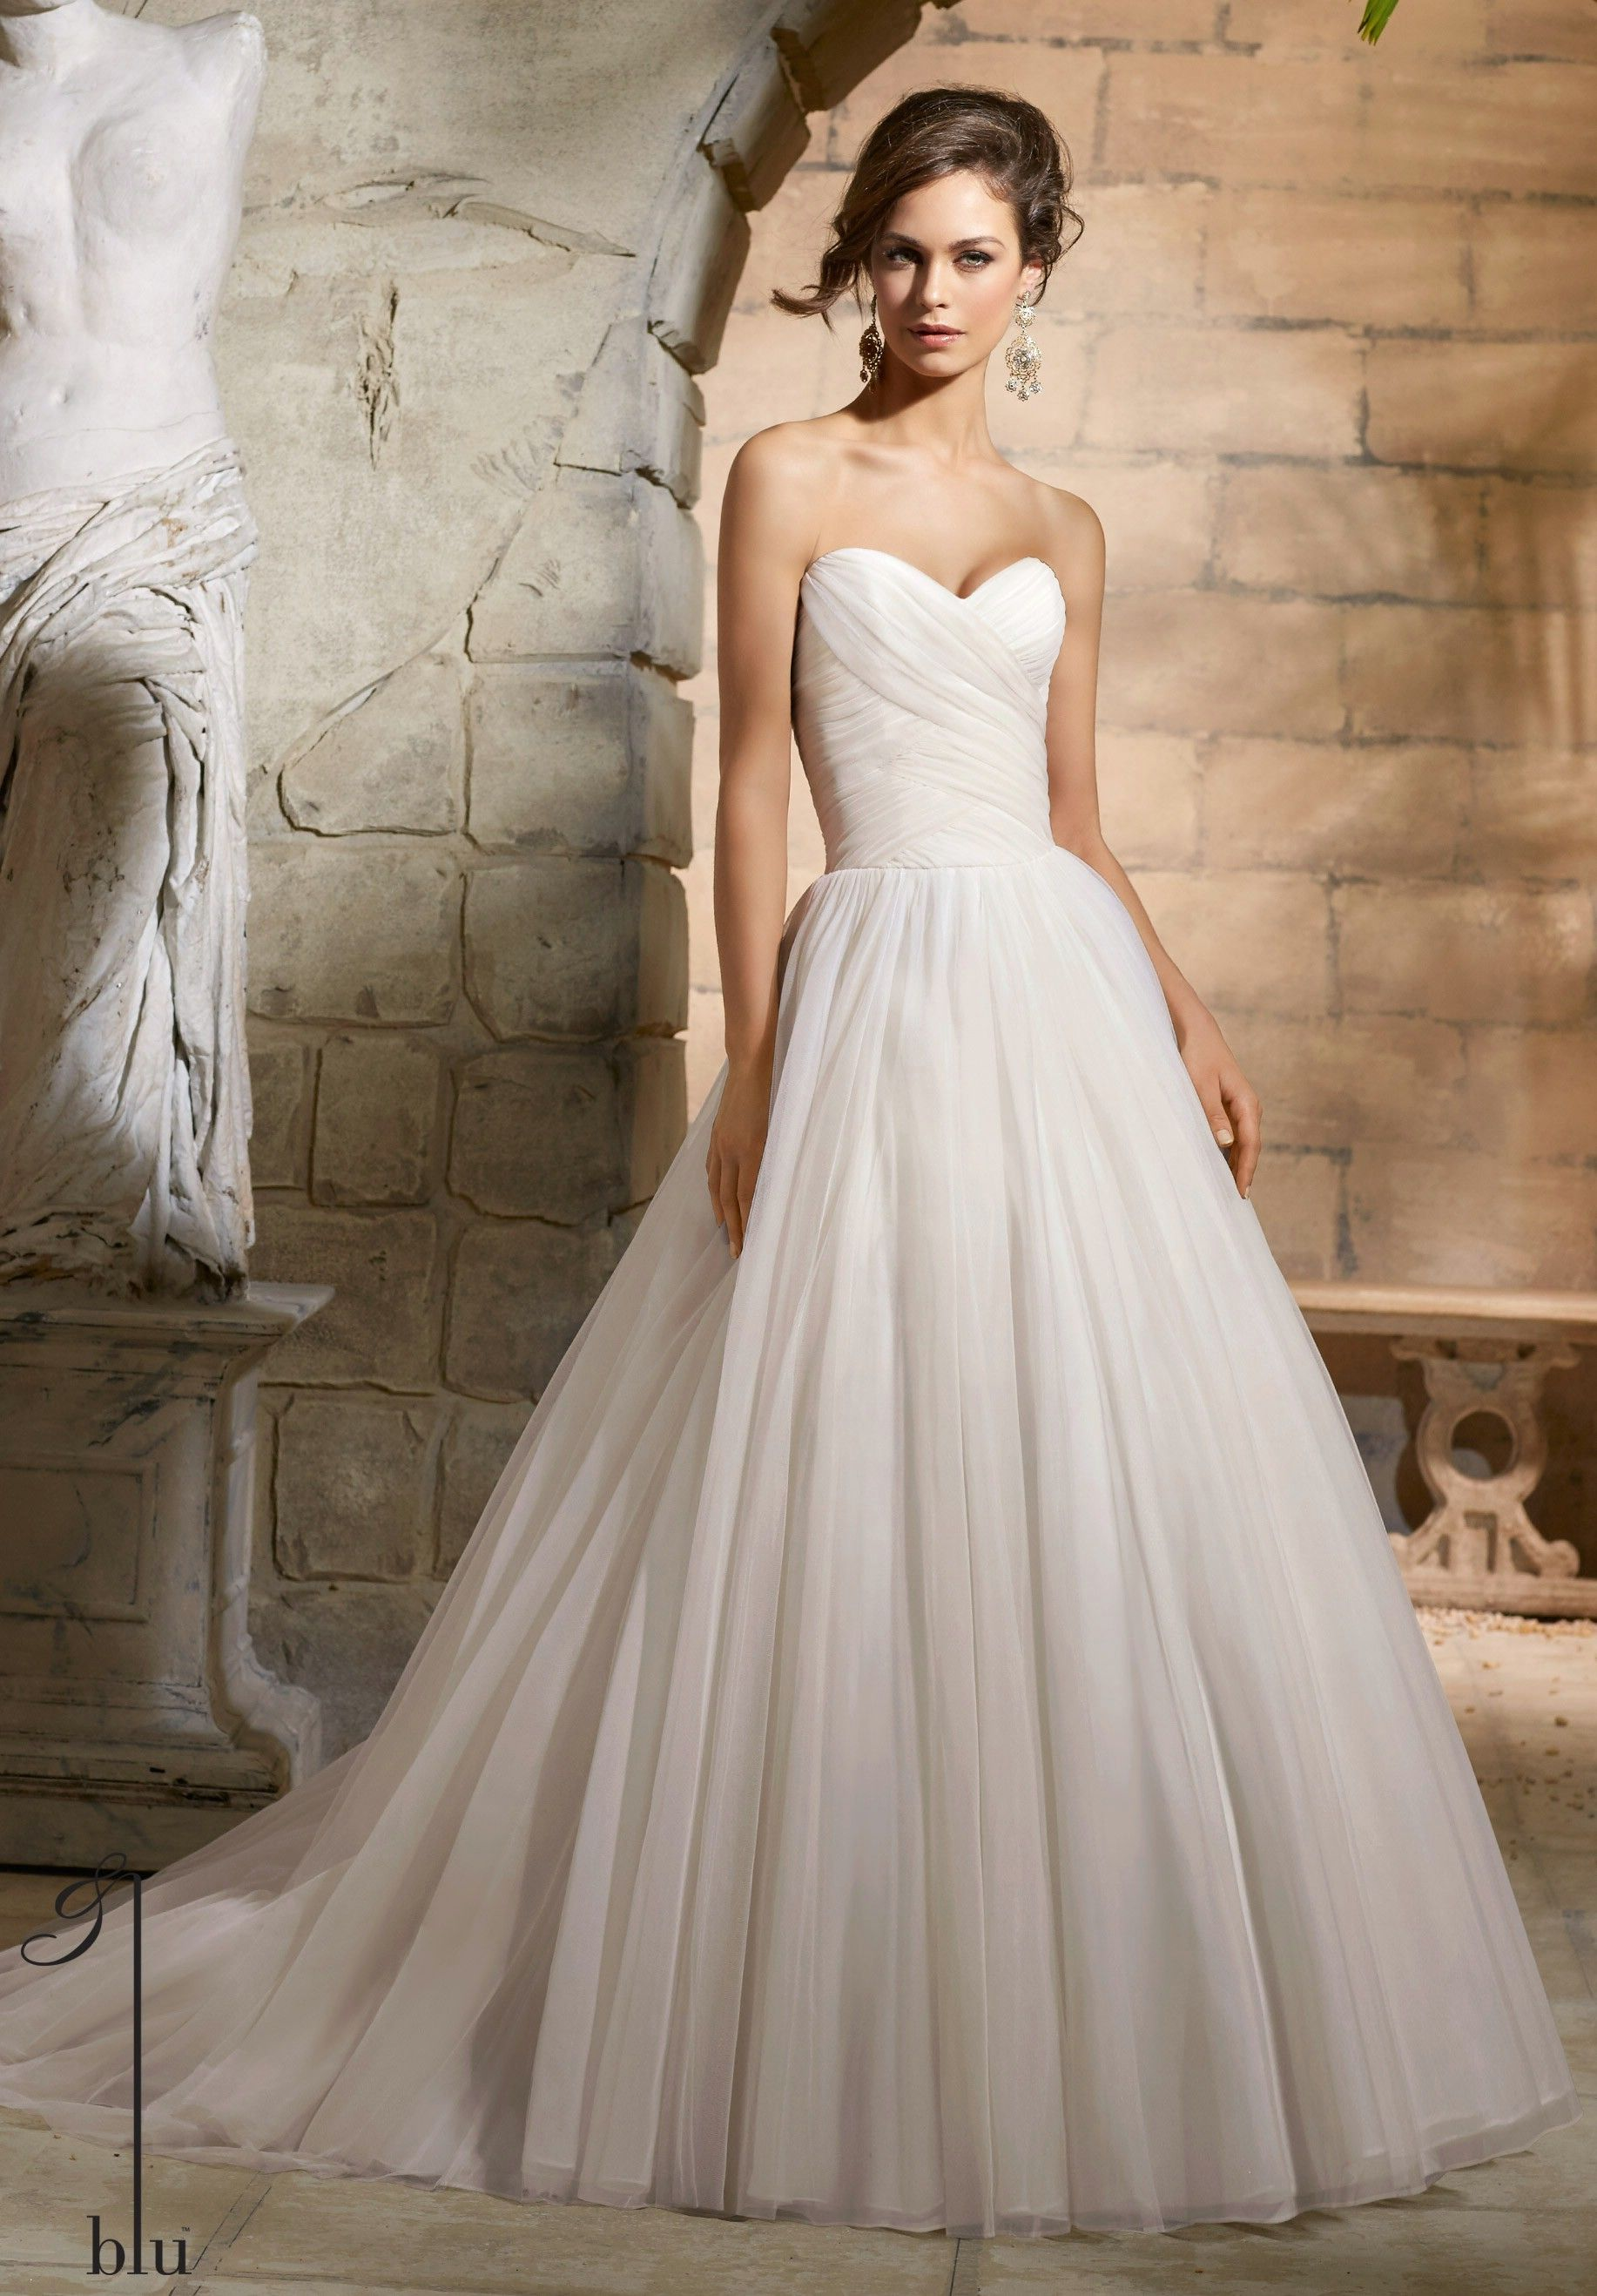 Mori lee blu wedding dresses style wedding